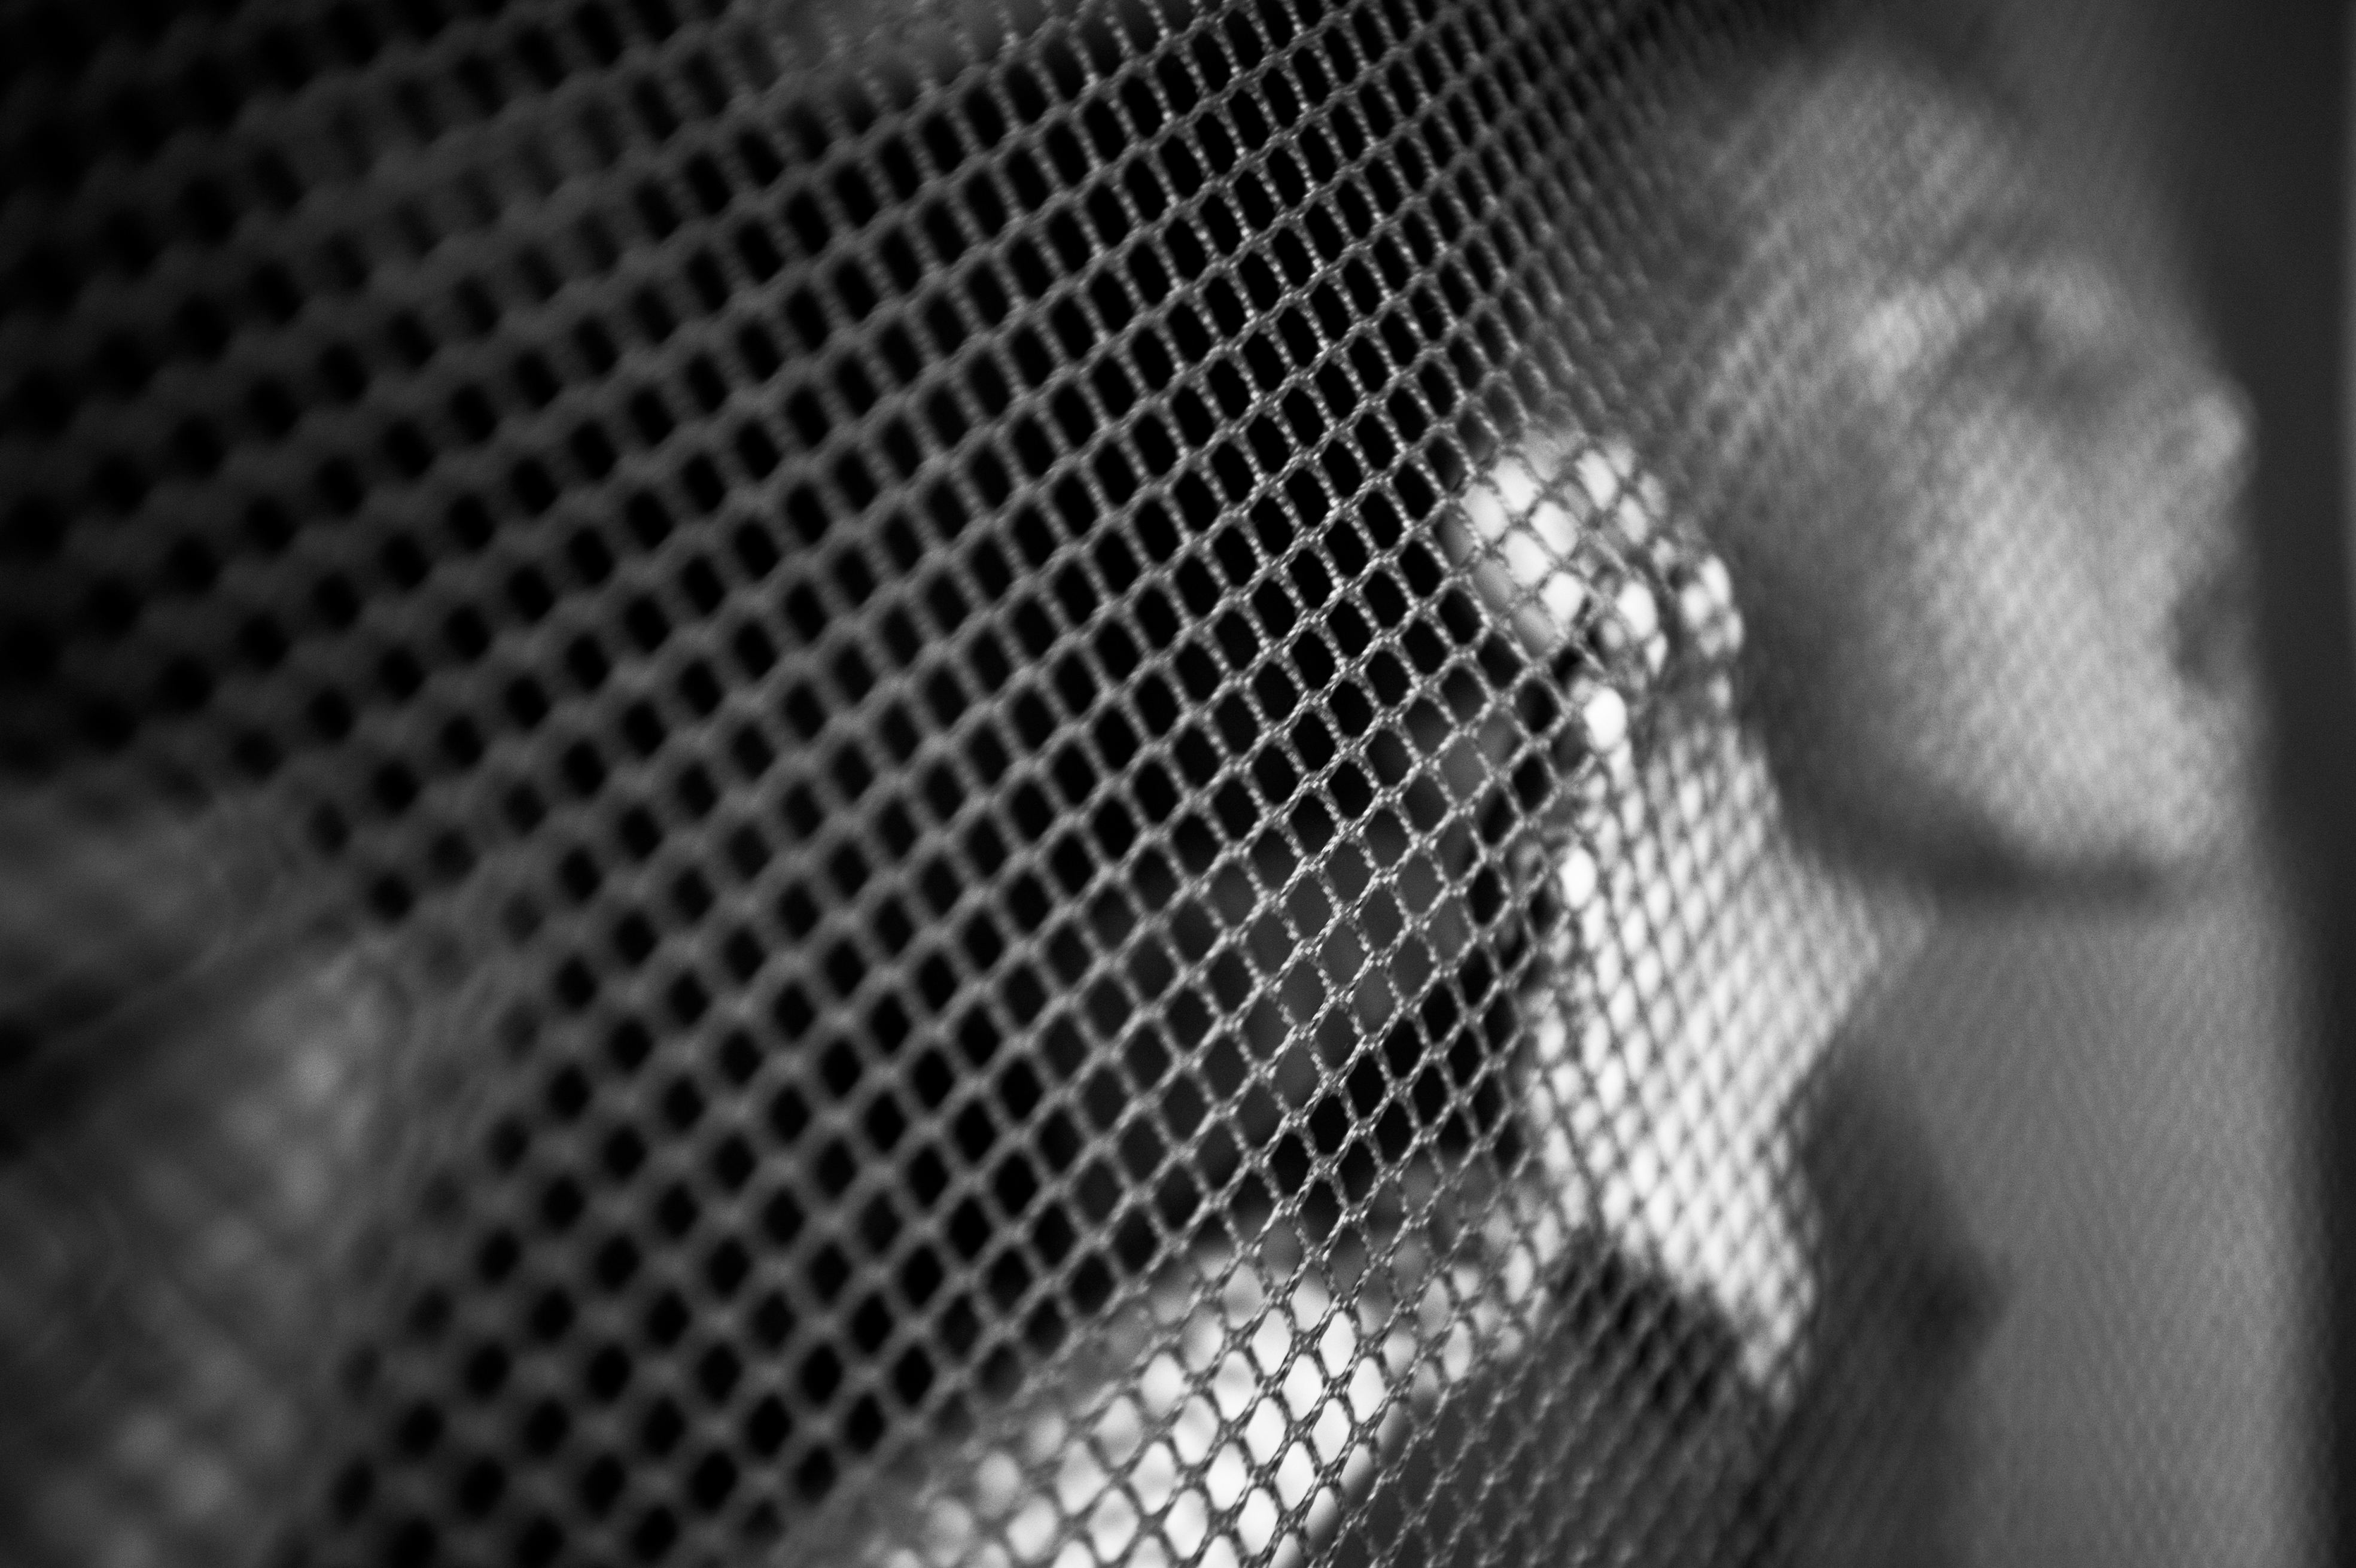 Marcus O'Loughlin, 8, tries to breathe through the mesh of a bouncy castle at the WakeMed Soccer Park during a birthday party for his brother, Brendan O'Loughlin, 6. Marcus has severe sensory issues, so the feeling of the mesh helped him focus and stay calm in an otherwise over-stimulating environment.